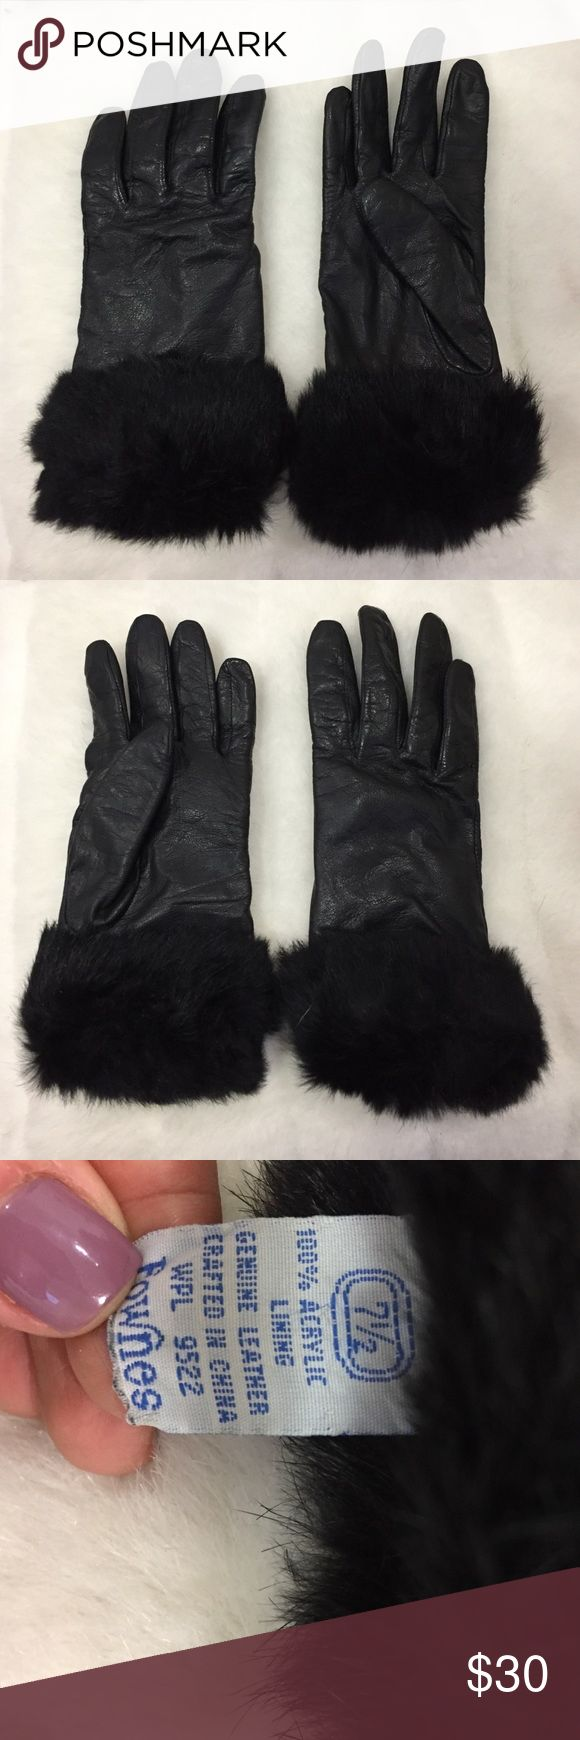 Black gloves fur trim - Leather Gloves With Fur Trim Black Leather Real With Faux Fur Trim Neiman Marcus